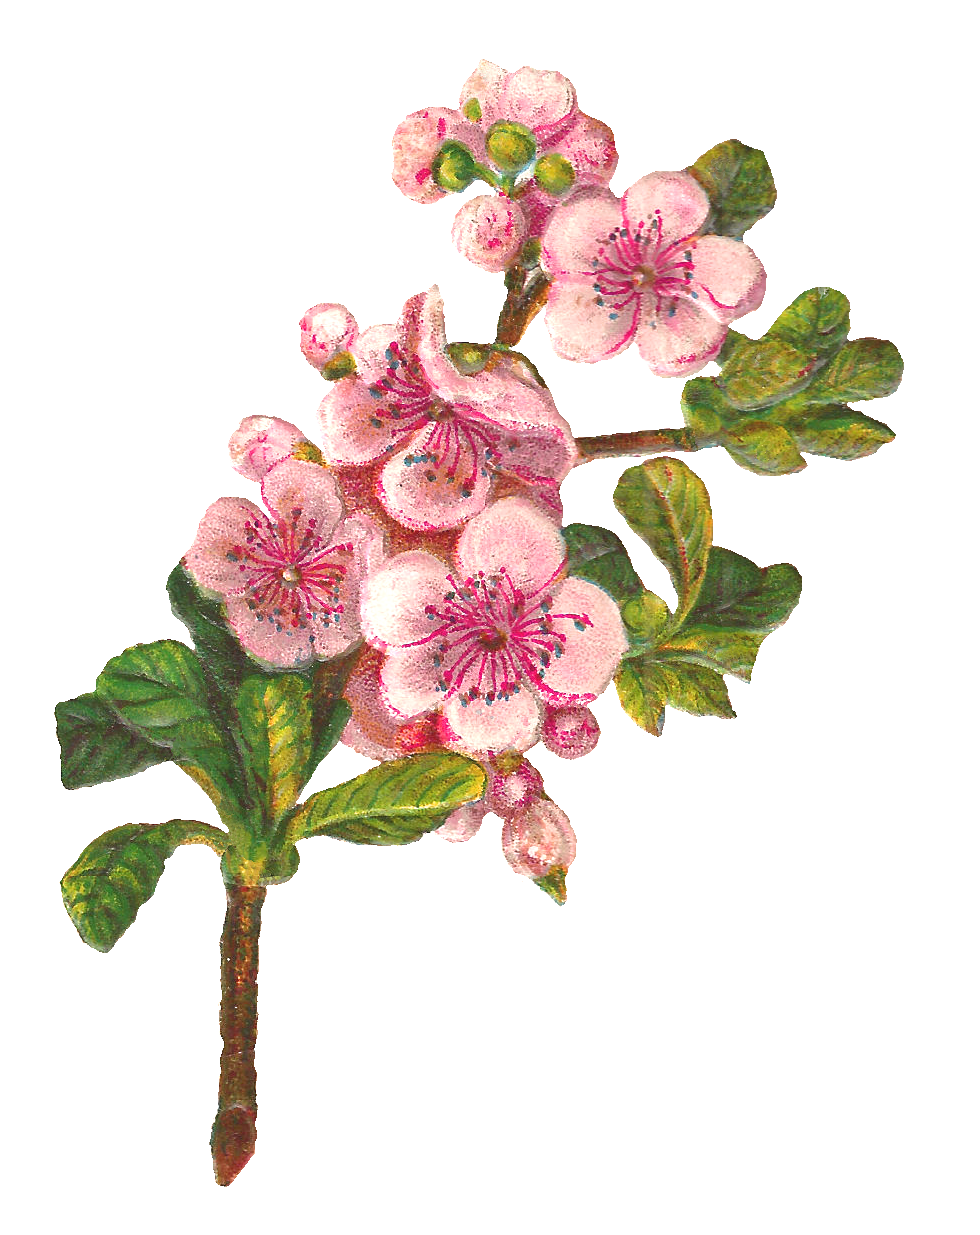 Apple tree digital clipart vector download Antique Images: Botanical Art Apple Blossom Flower Digital Download vector download